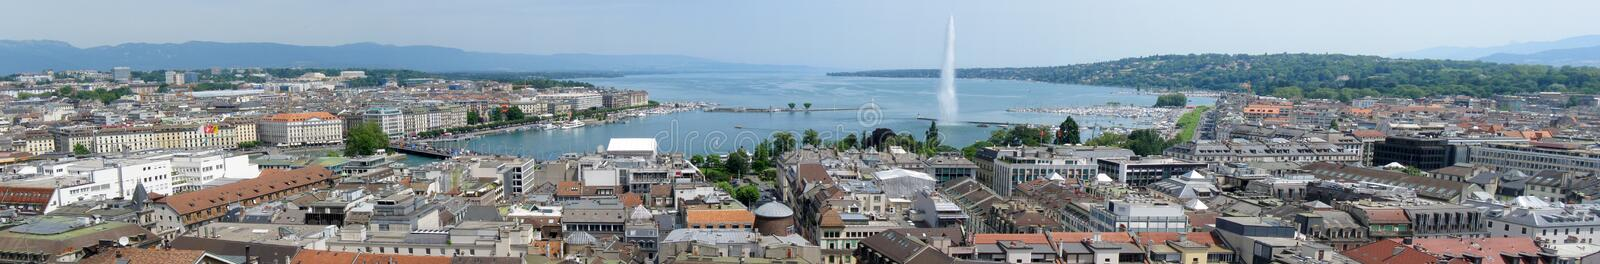 Geneva panorama. An extra wide aerial view of Geneva, Switzerland with the Jet d'Eau water fountain on the background stock images